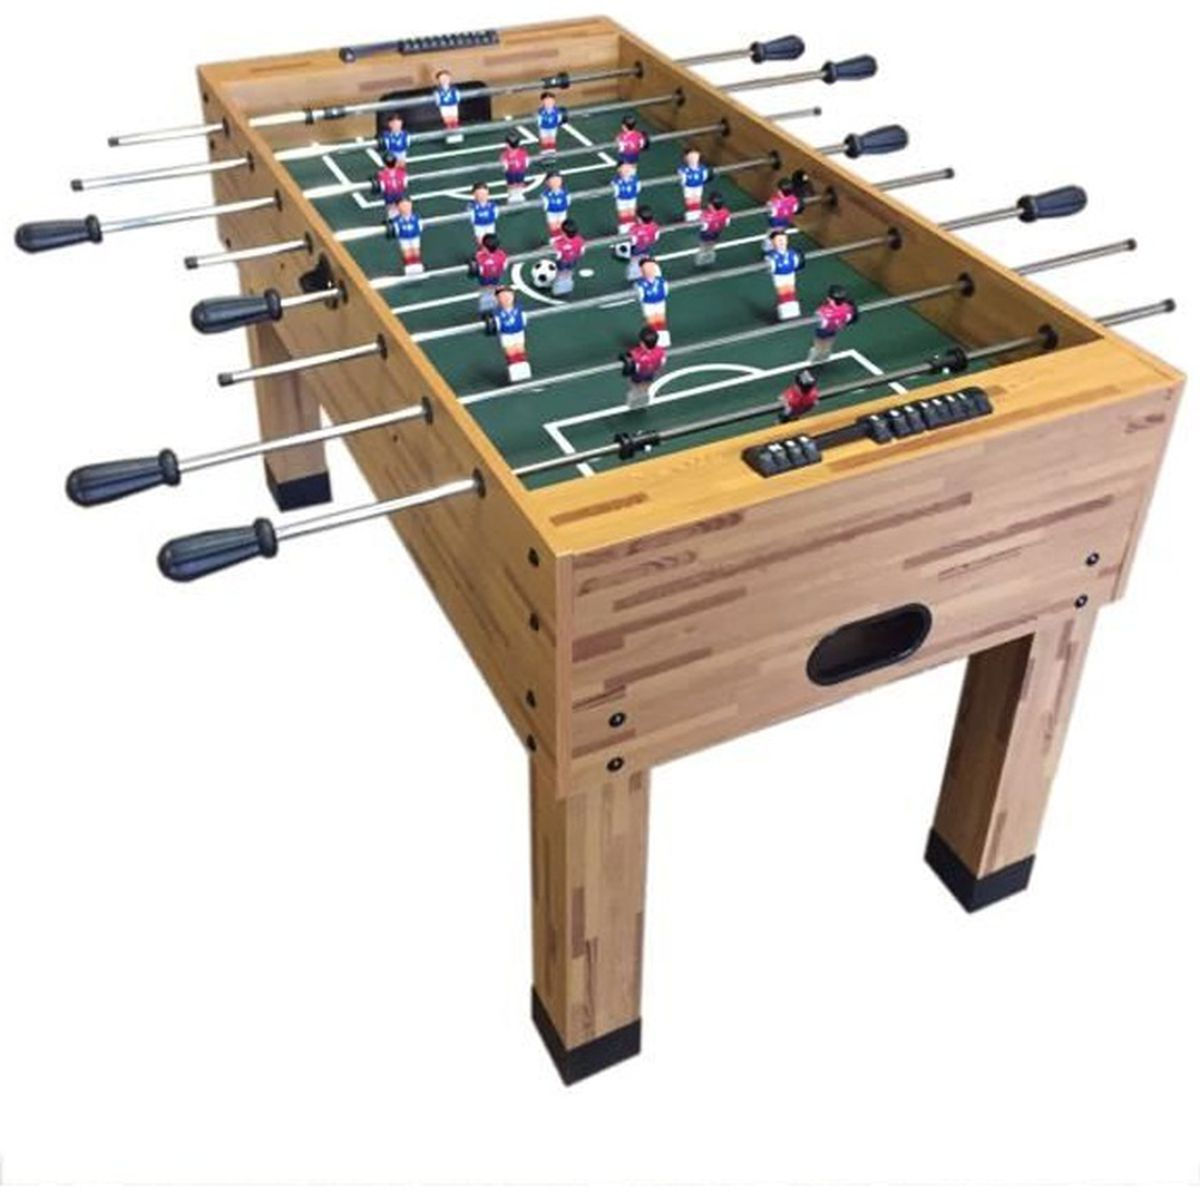 644b53653485d8 BABYFOOT BABY FOOT Table SOCCER TABLE SOCCER TABLE DE JEU FOOTBALL ...